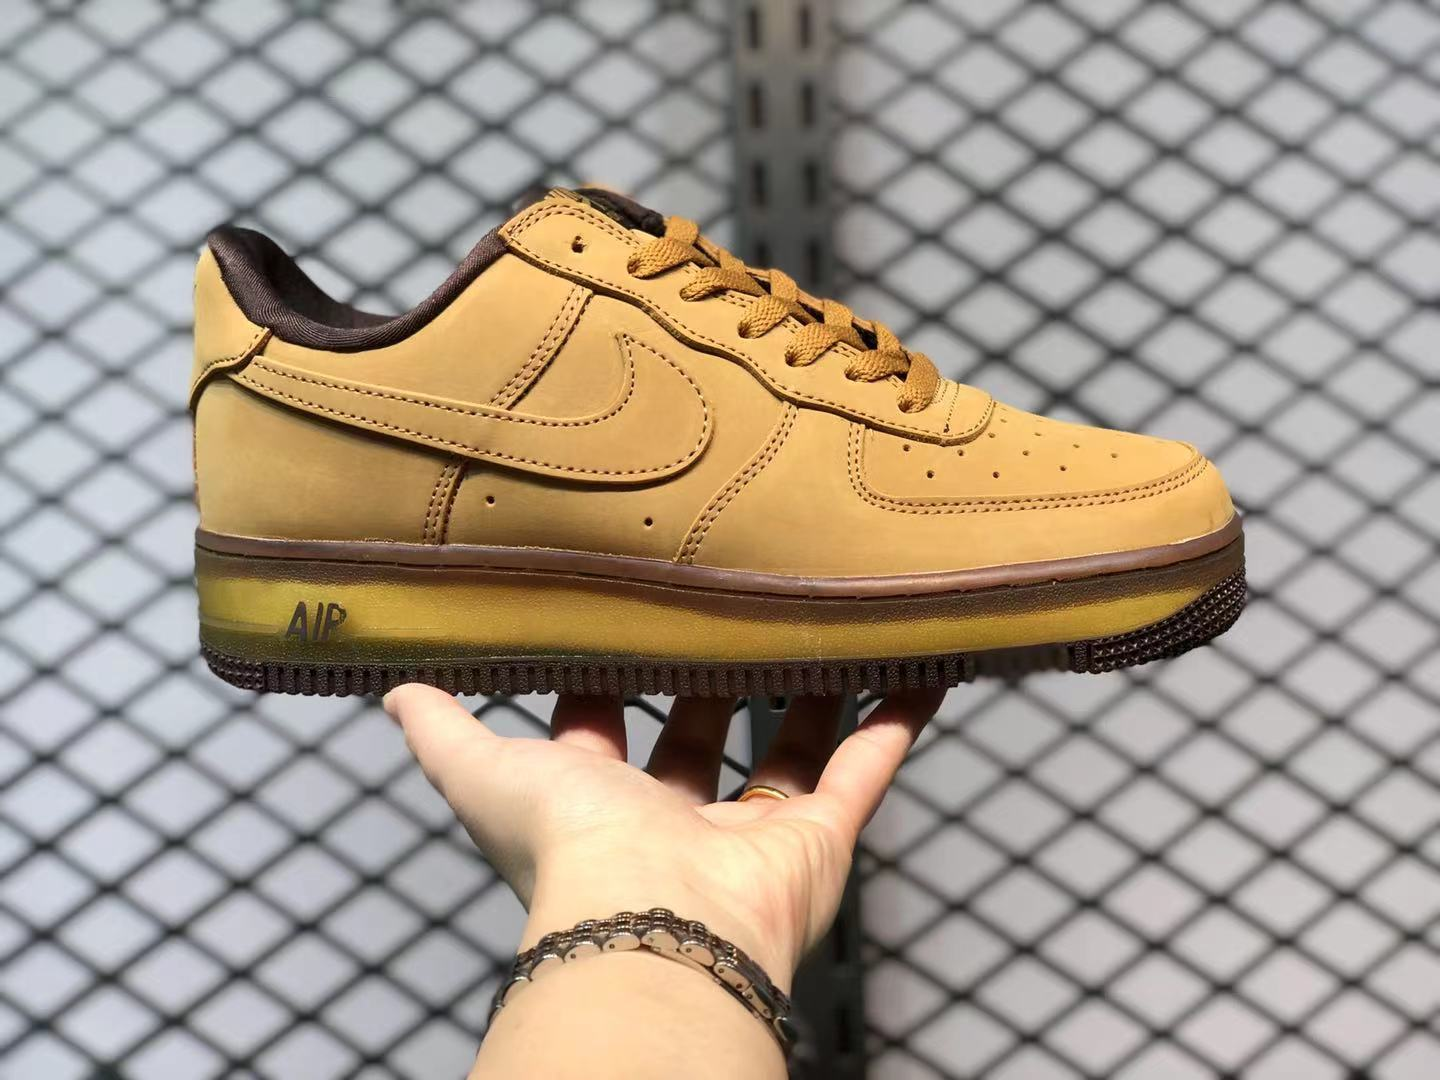 Nike Air Force 1 Low CO.JP Wheat-Dark Mocha DC7504-700 To Buy